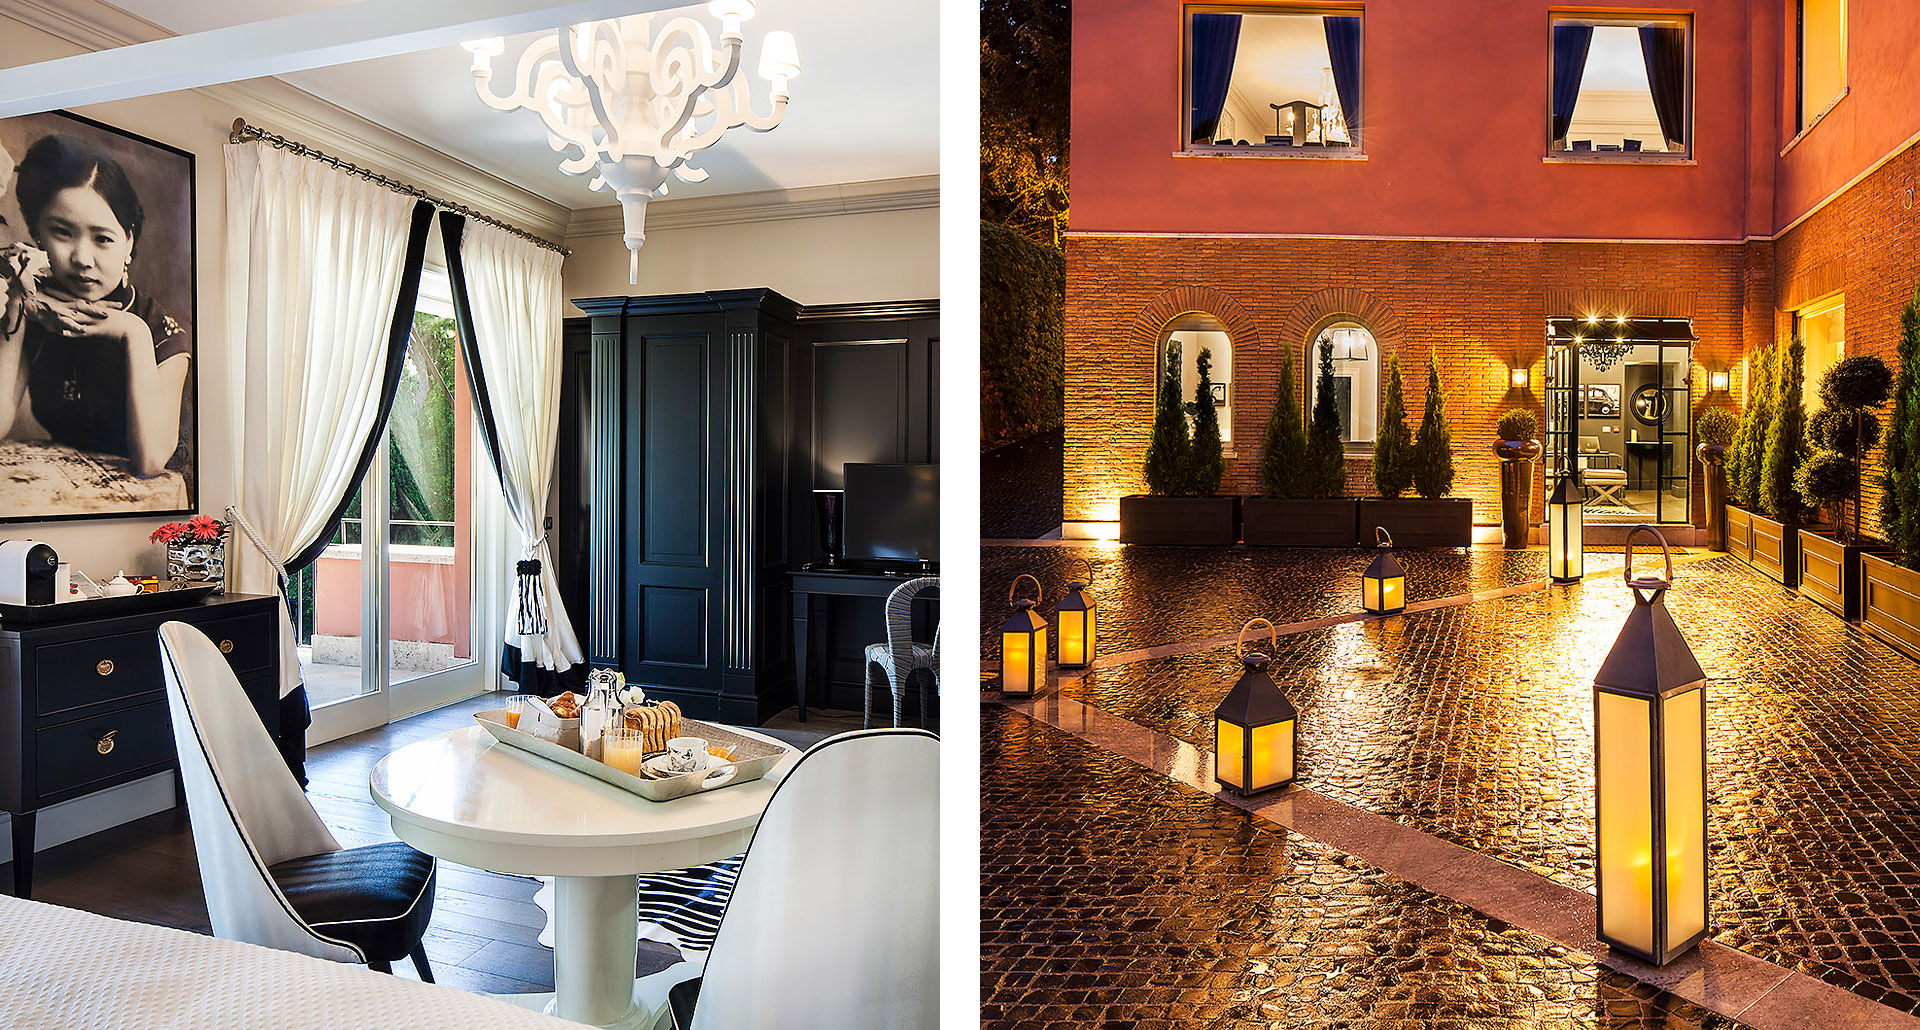 Pepoli 9 - boutique hotel in Rome